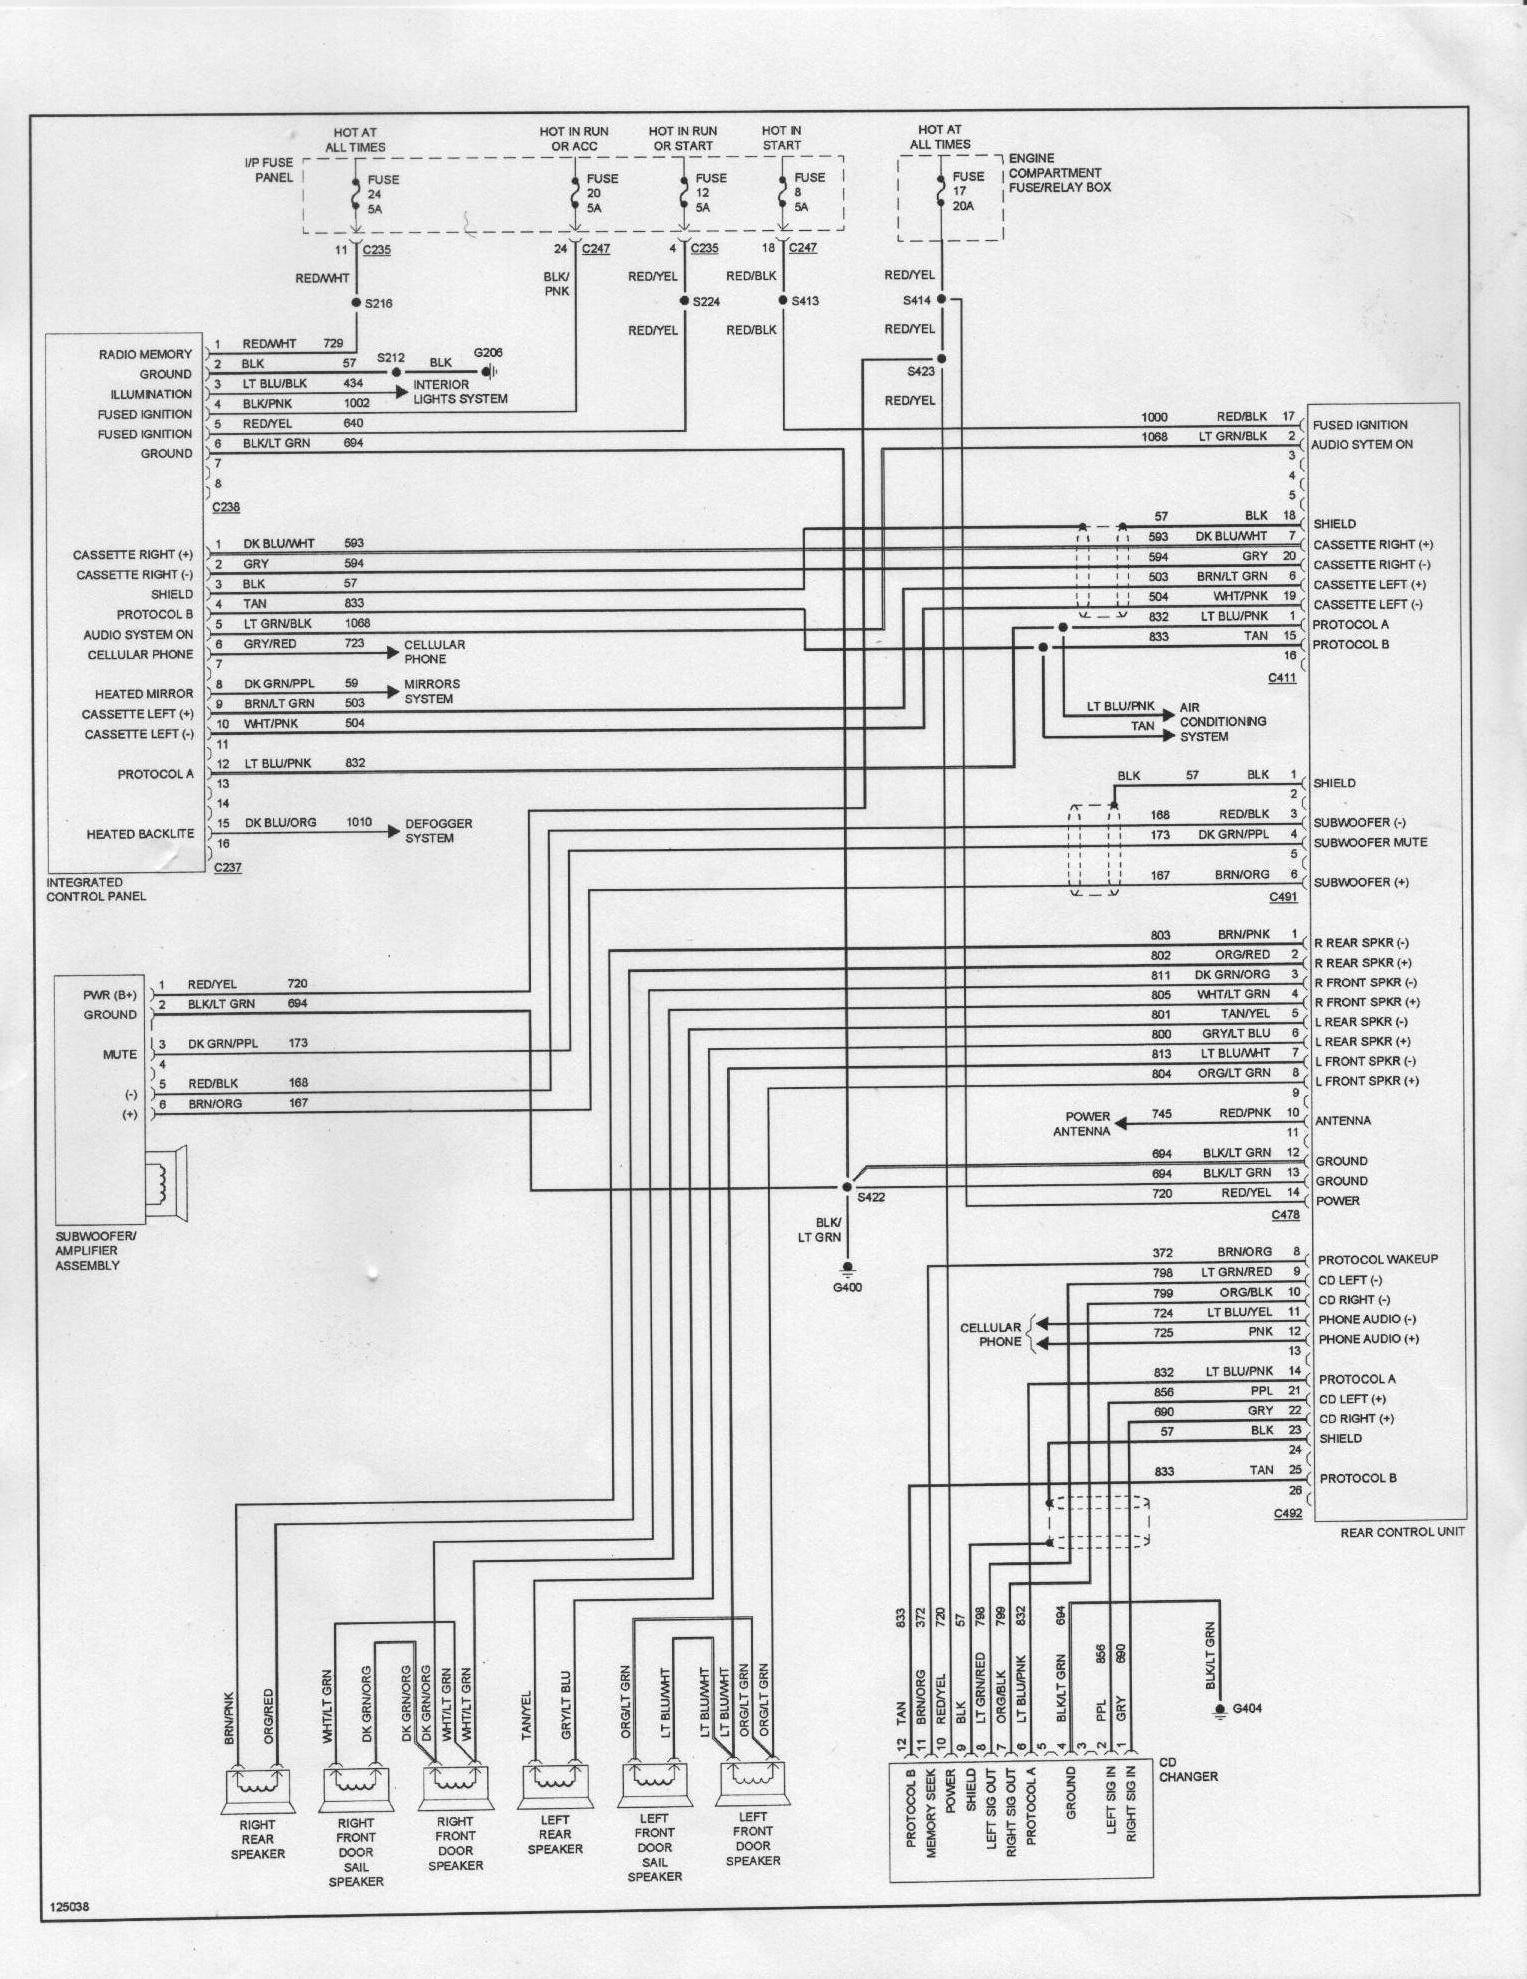 Scosche Stereo Wiring Diagrams For 2004 Chevy Aveo Wiring Diagrams Chatter Chatter Chatteriedelavalleedufelin Fr